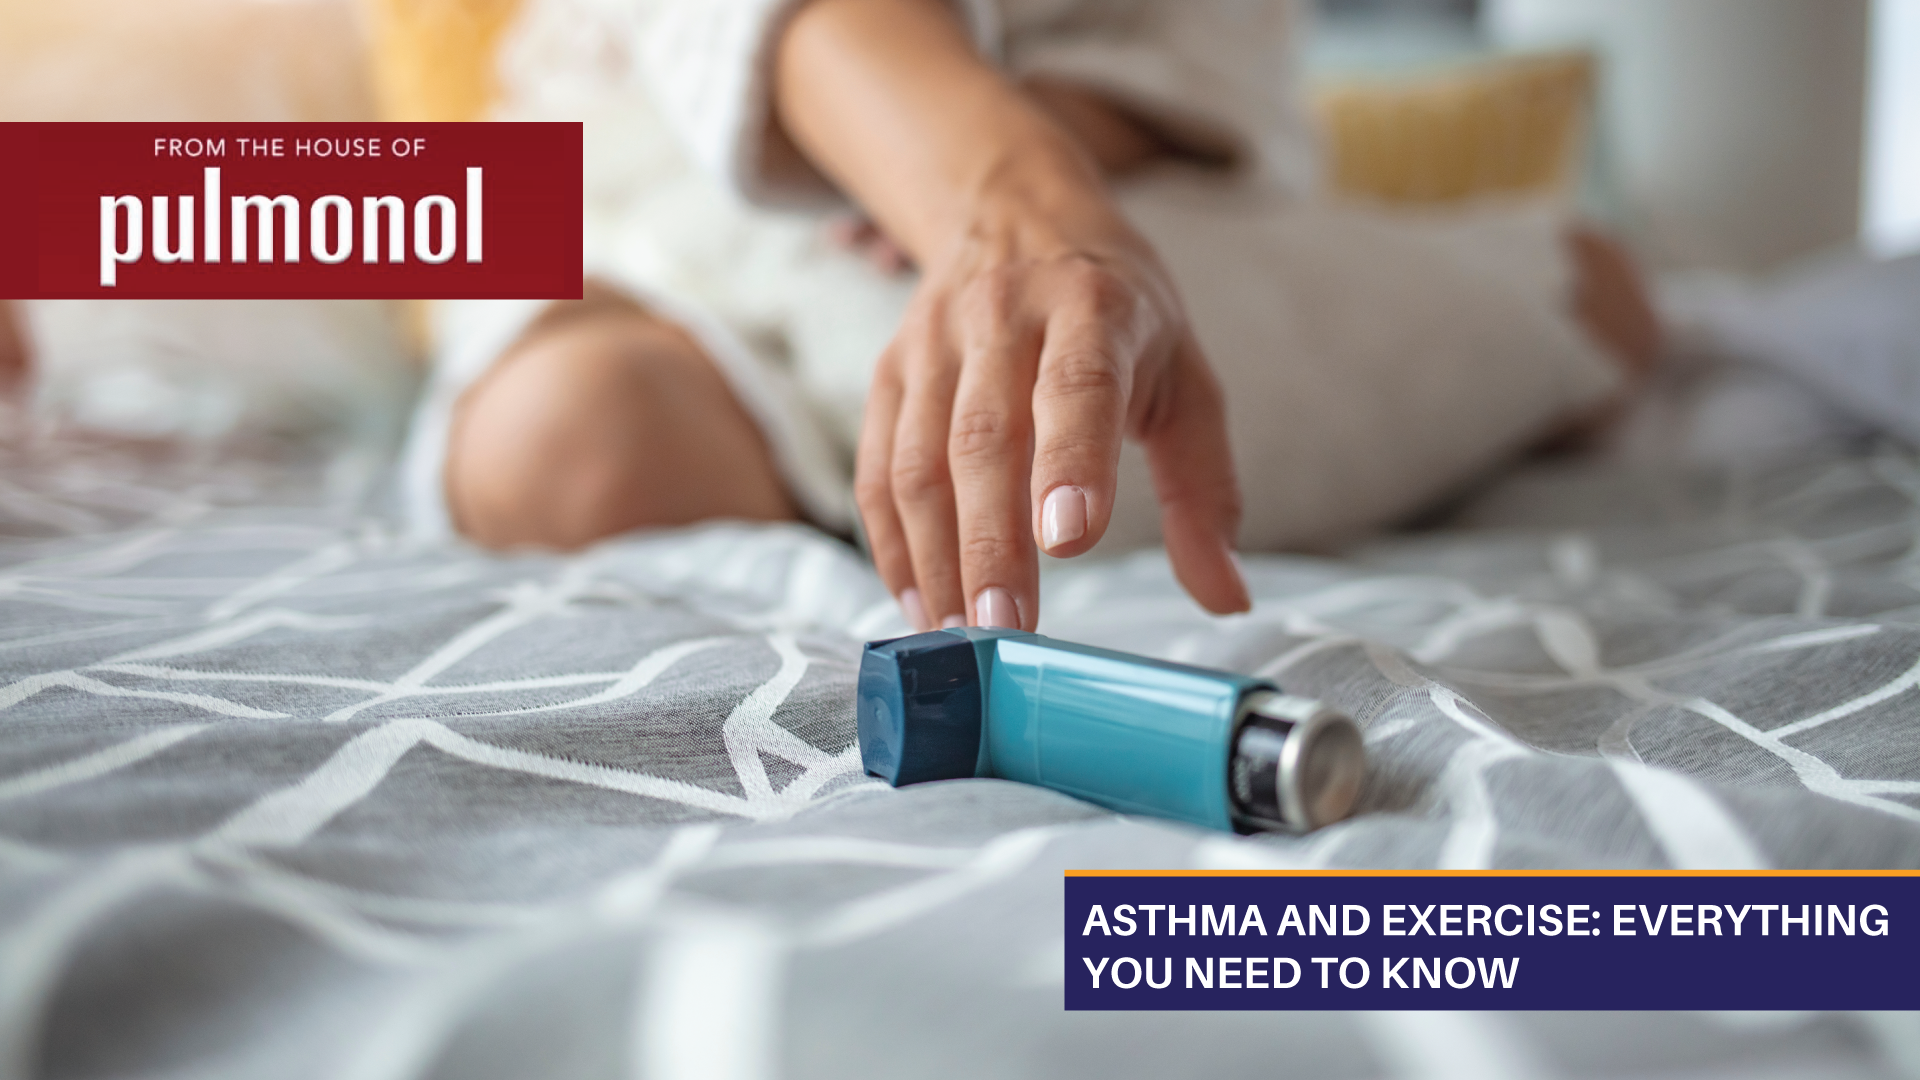 Asthma And Exercise: Everything You Need To Know